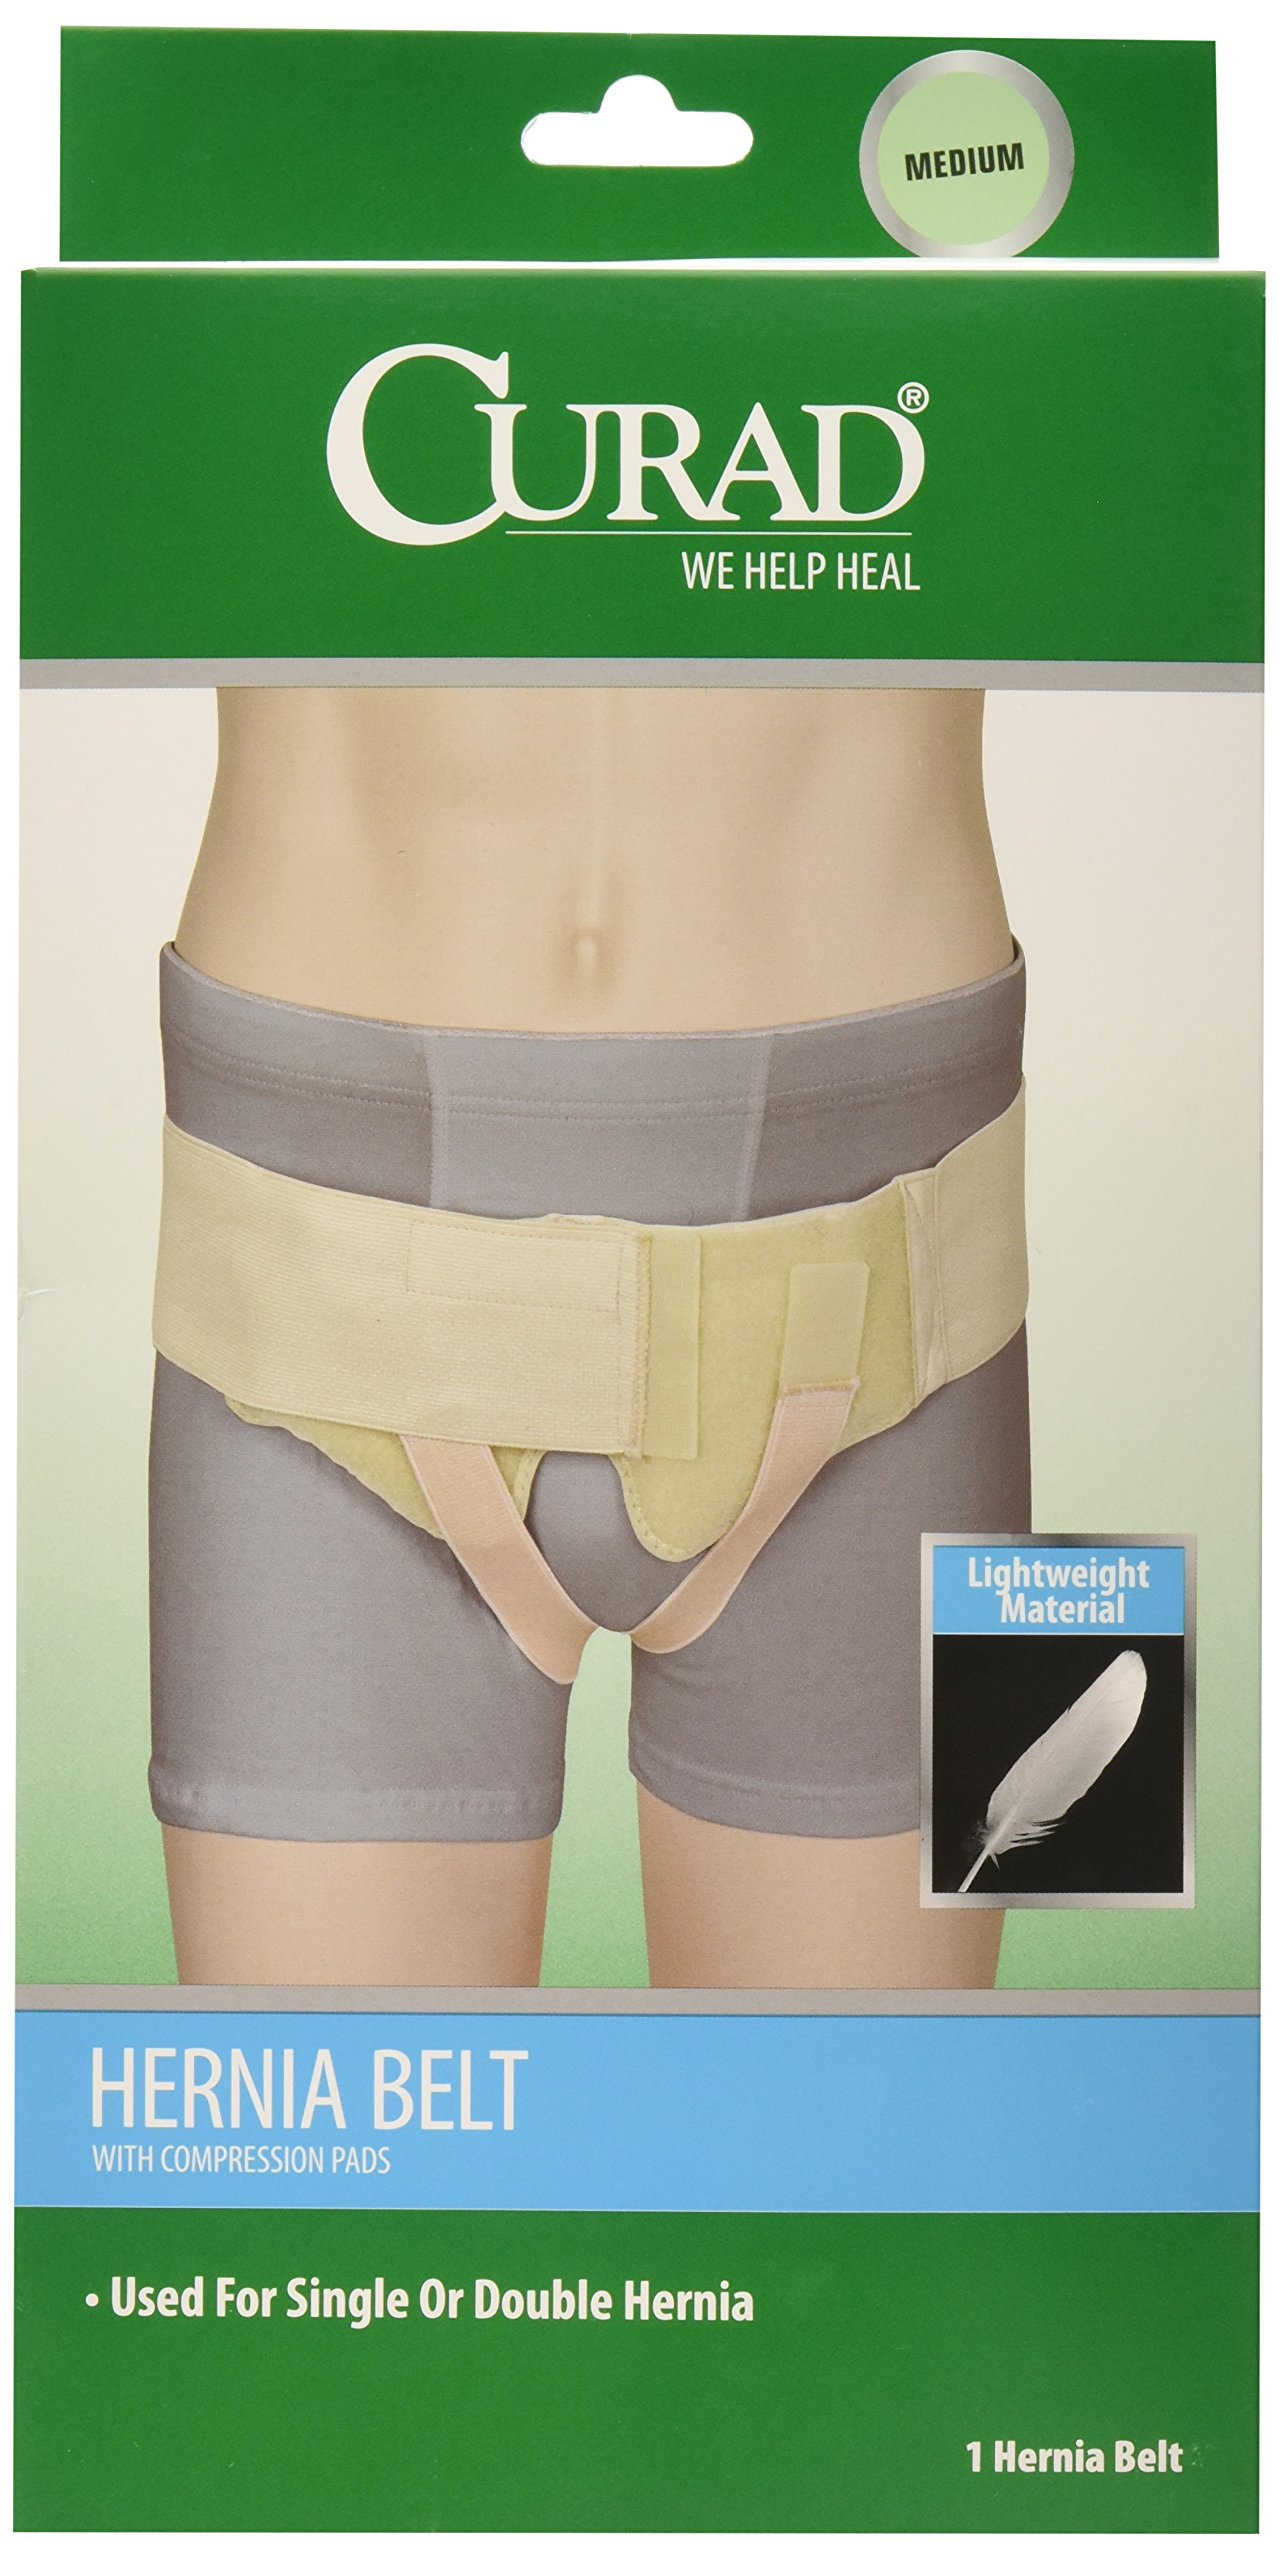 Curad Hernia Belt with Compression Pads, Medium